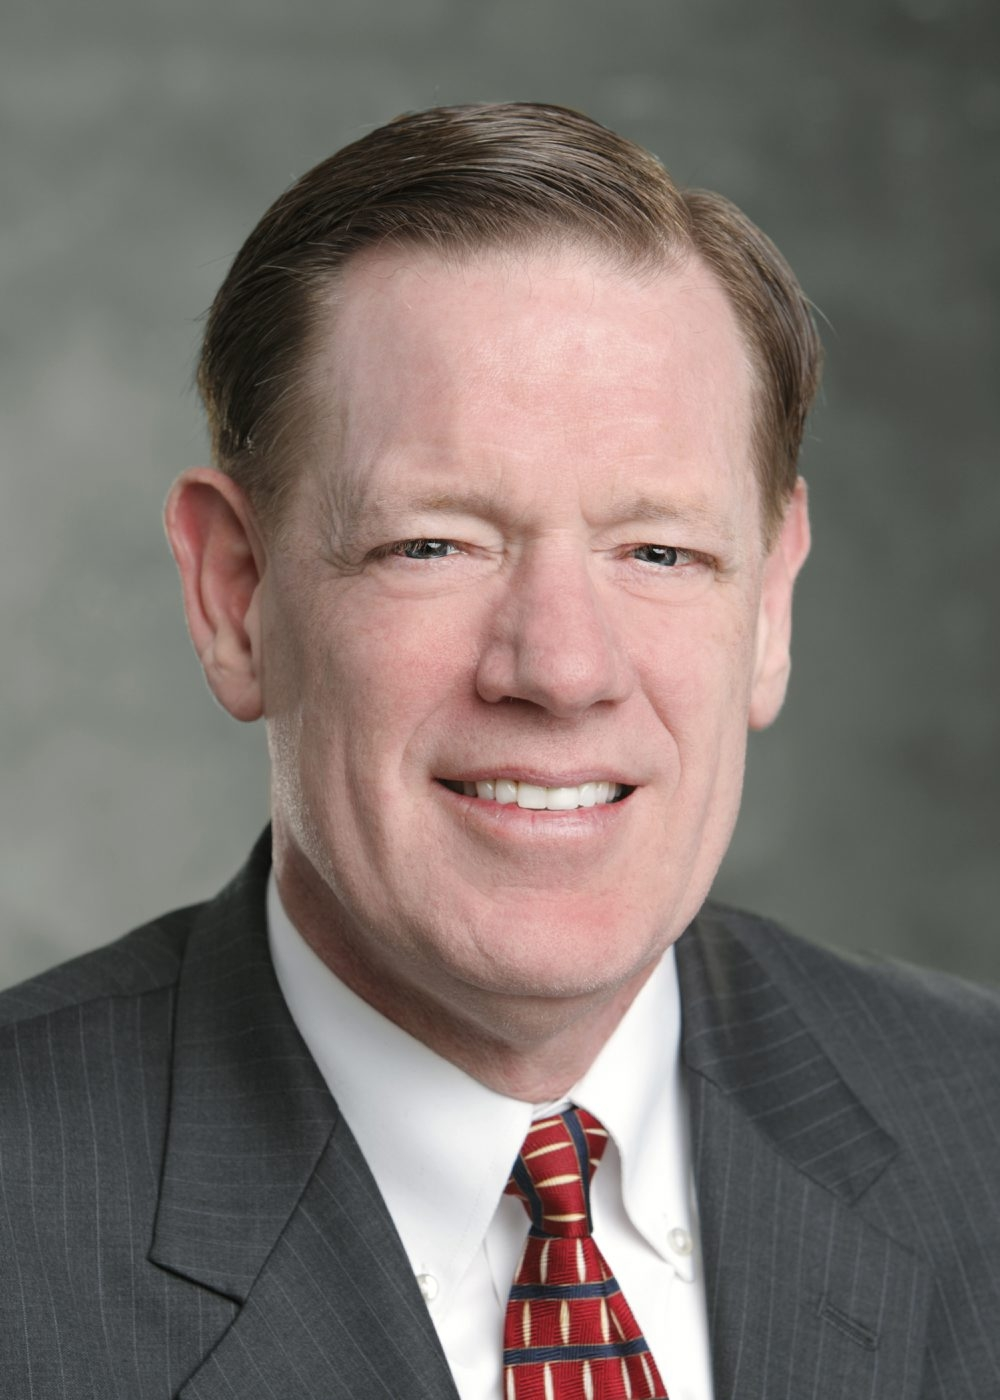 Lawrence Gavin, was named executive director and chief procurement officer at Columbus McKinnon Corp.